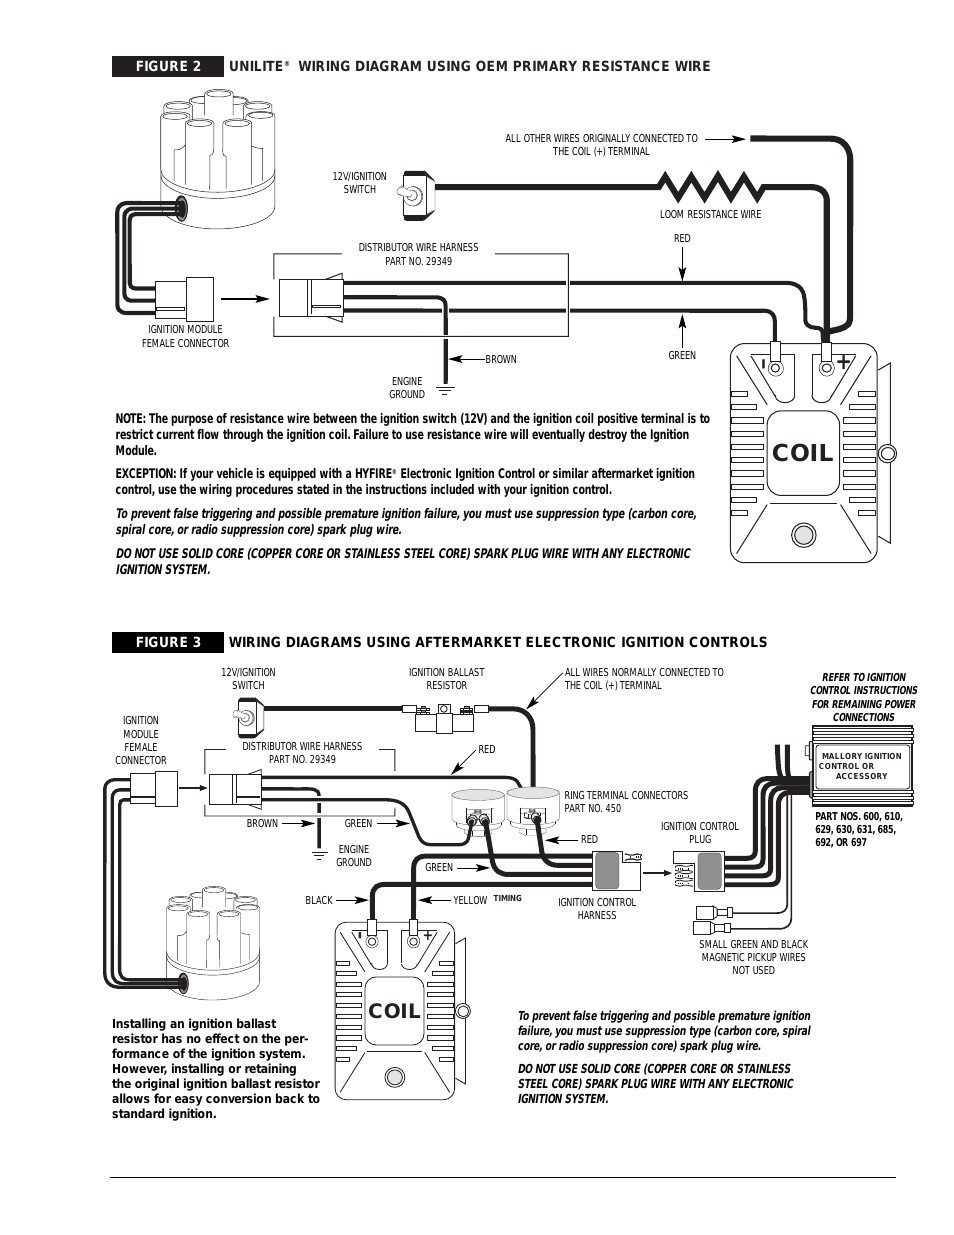 003f729 Mallory 6a High Fire Wiring Diagram Wiring Library